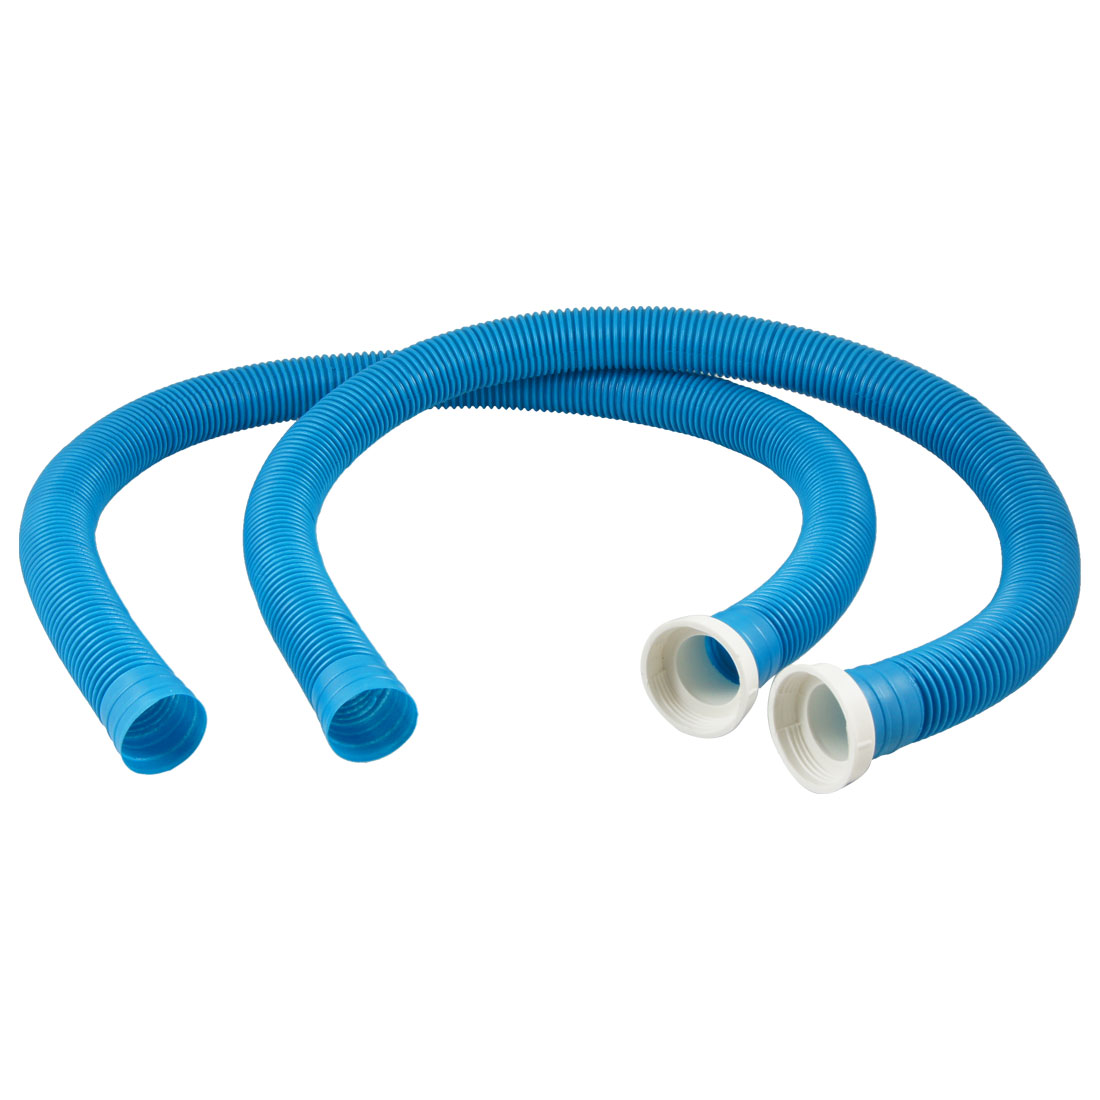 "Washing Machine Dishwasher 36"" Long Drain Hose Extension Blue 2 Pcs"